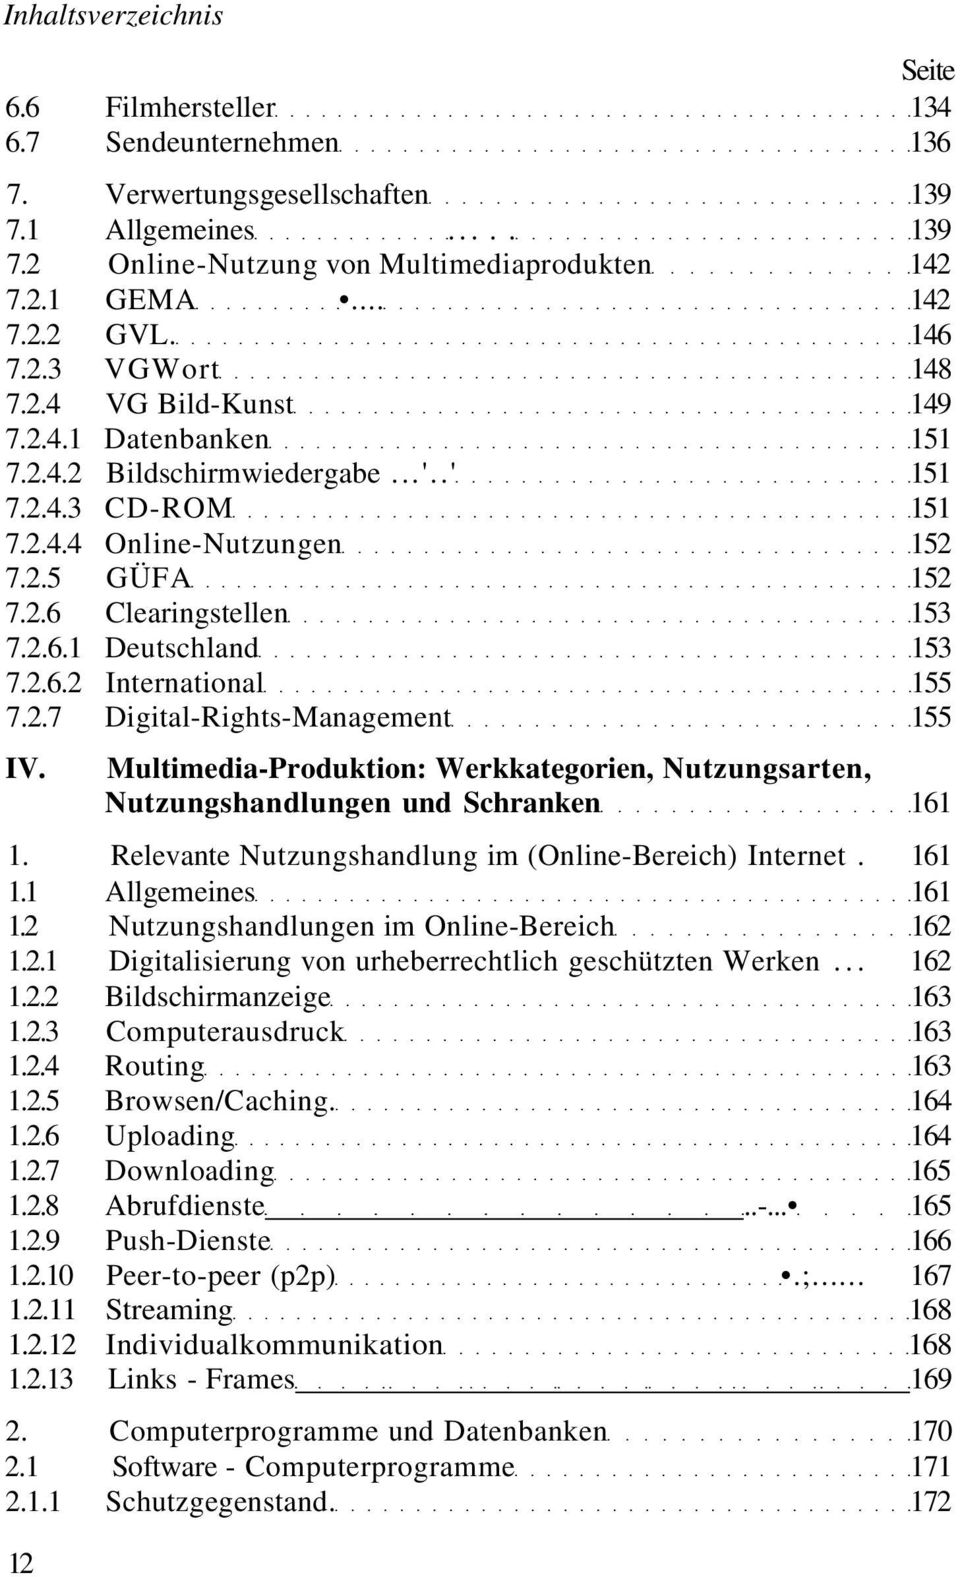 2.6.2 International 155 7.2.7 Digital-Rights-Management 155 IV. Multimedia-Produktion: Werkkategorien, Nutzungsarten, Nutzungshandlungen und Schranken 161 1.